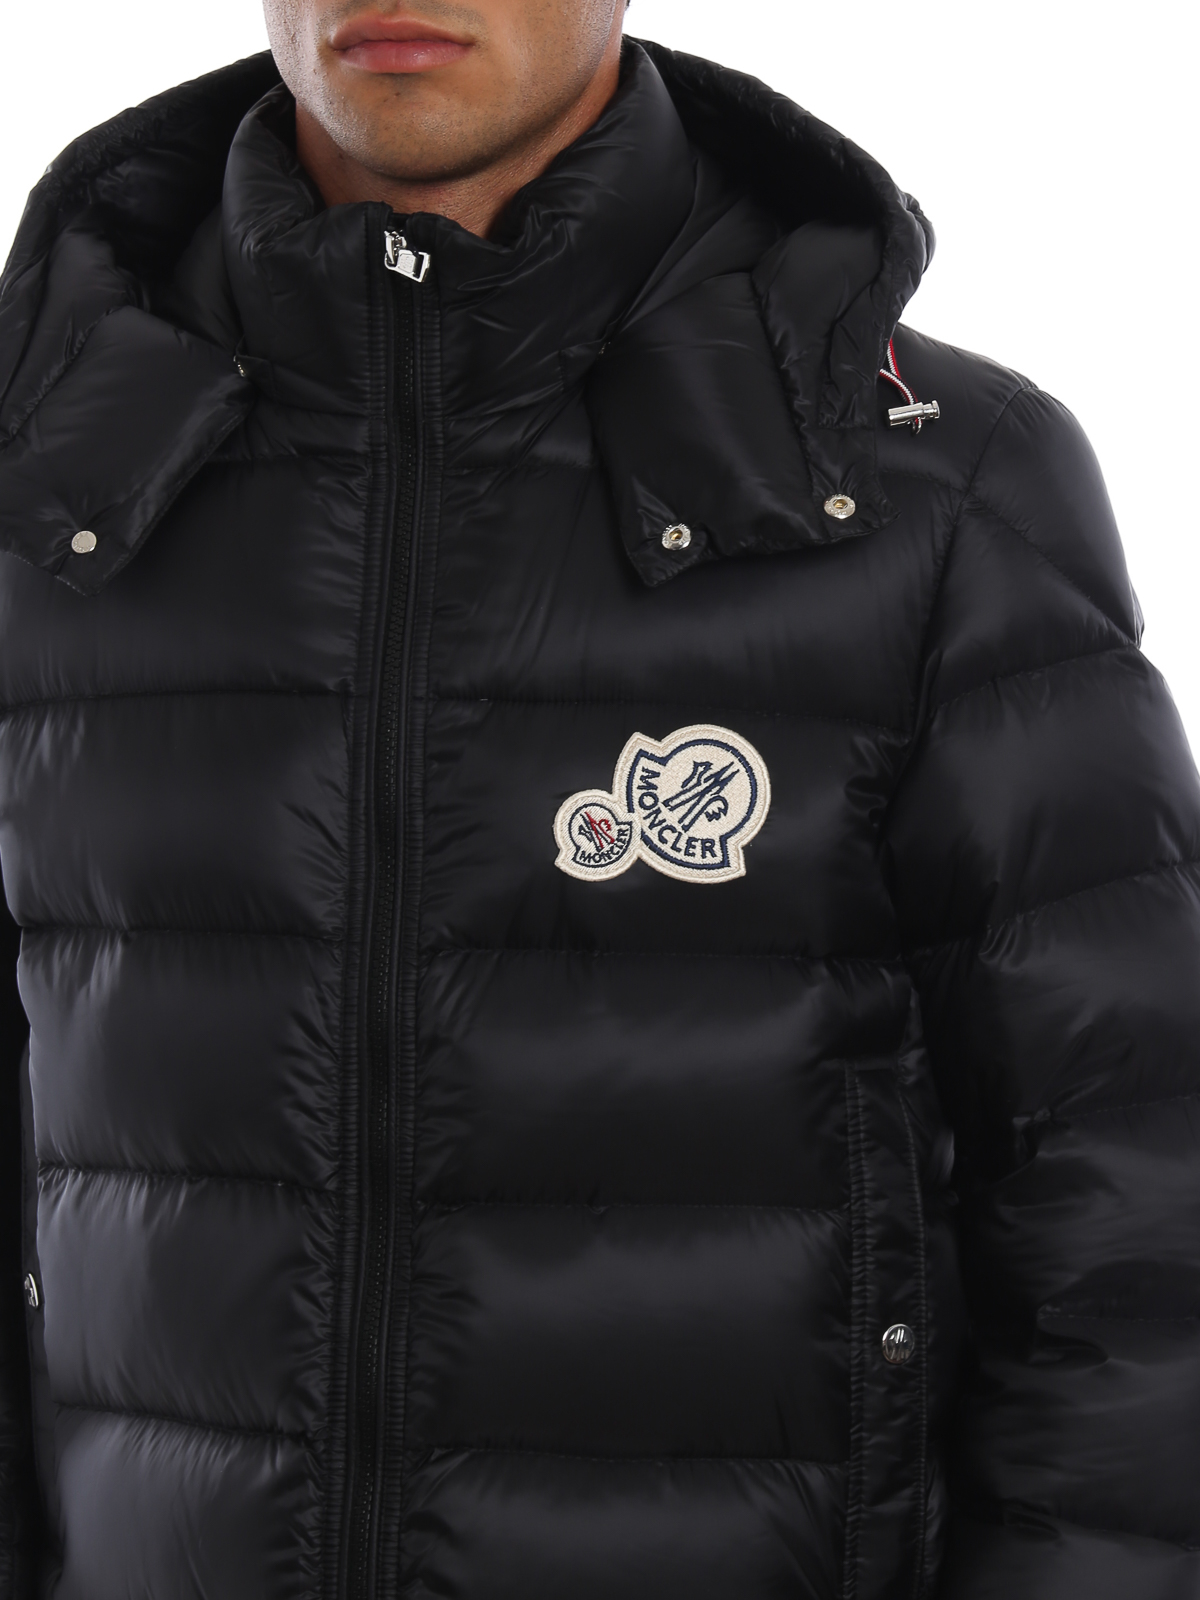 7f67abdd5 Moncler - Bramant black hooded puffer jacket - padded jackets - D2 ...